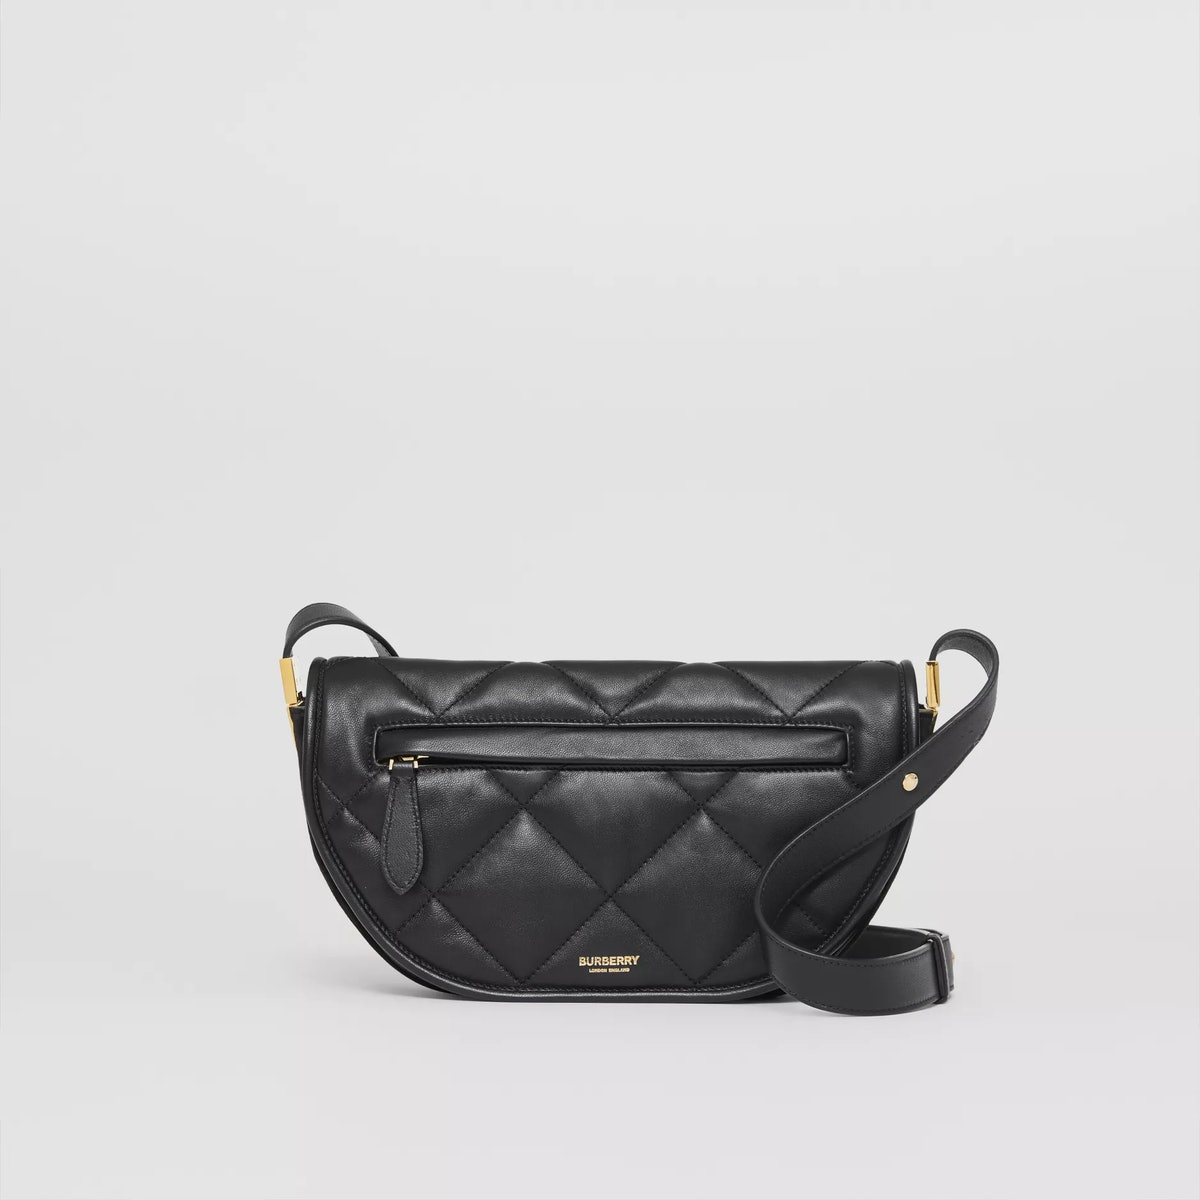 Small Quilted Lambskin Olympia Bag in Black from Burberry.